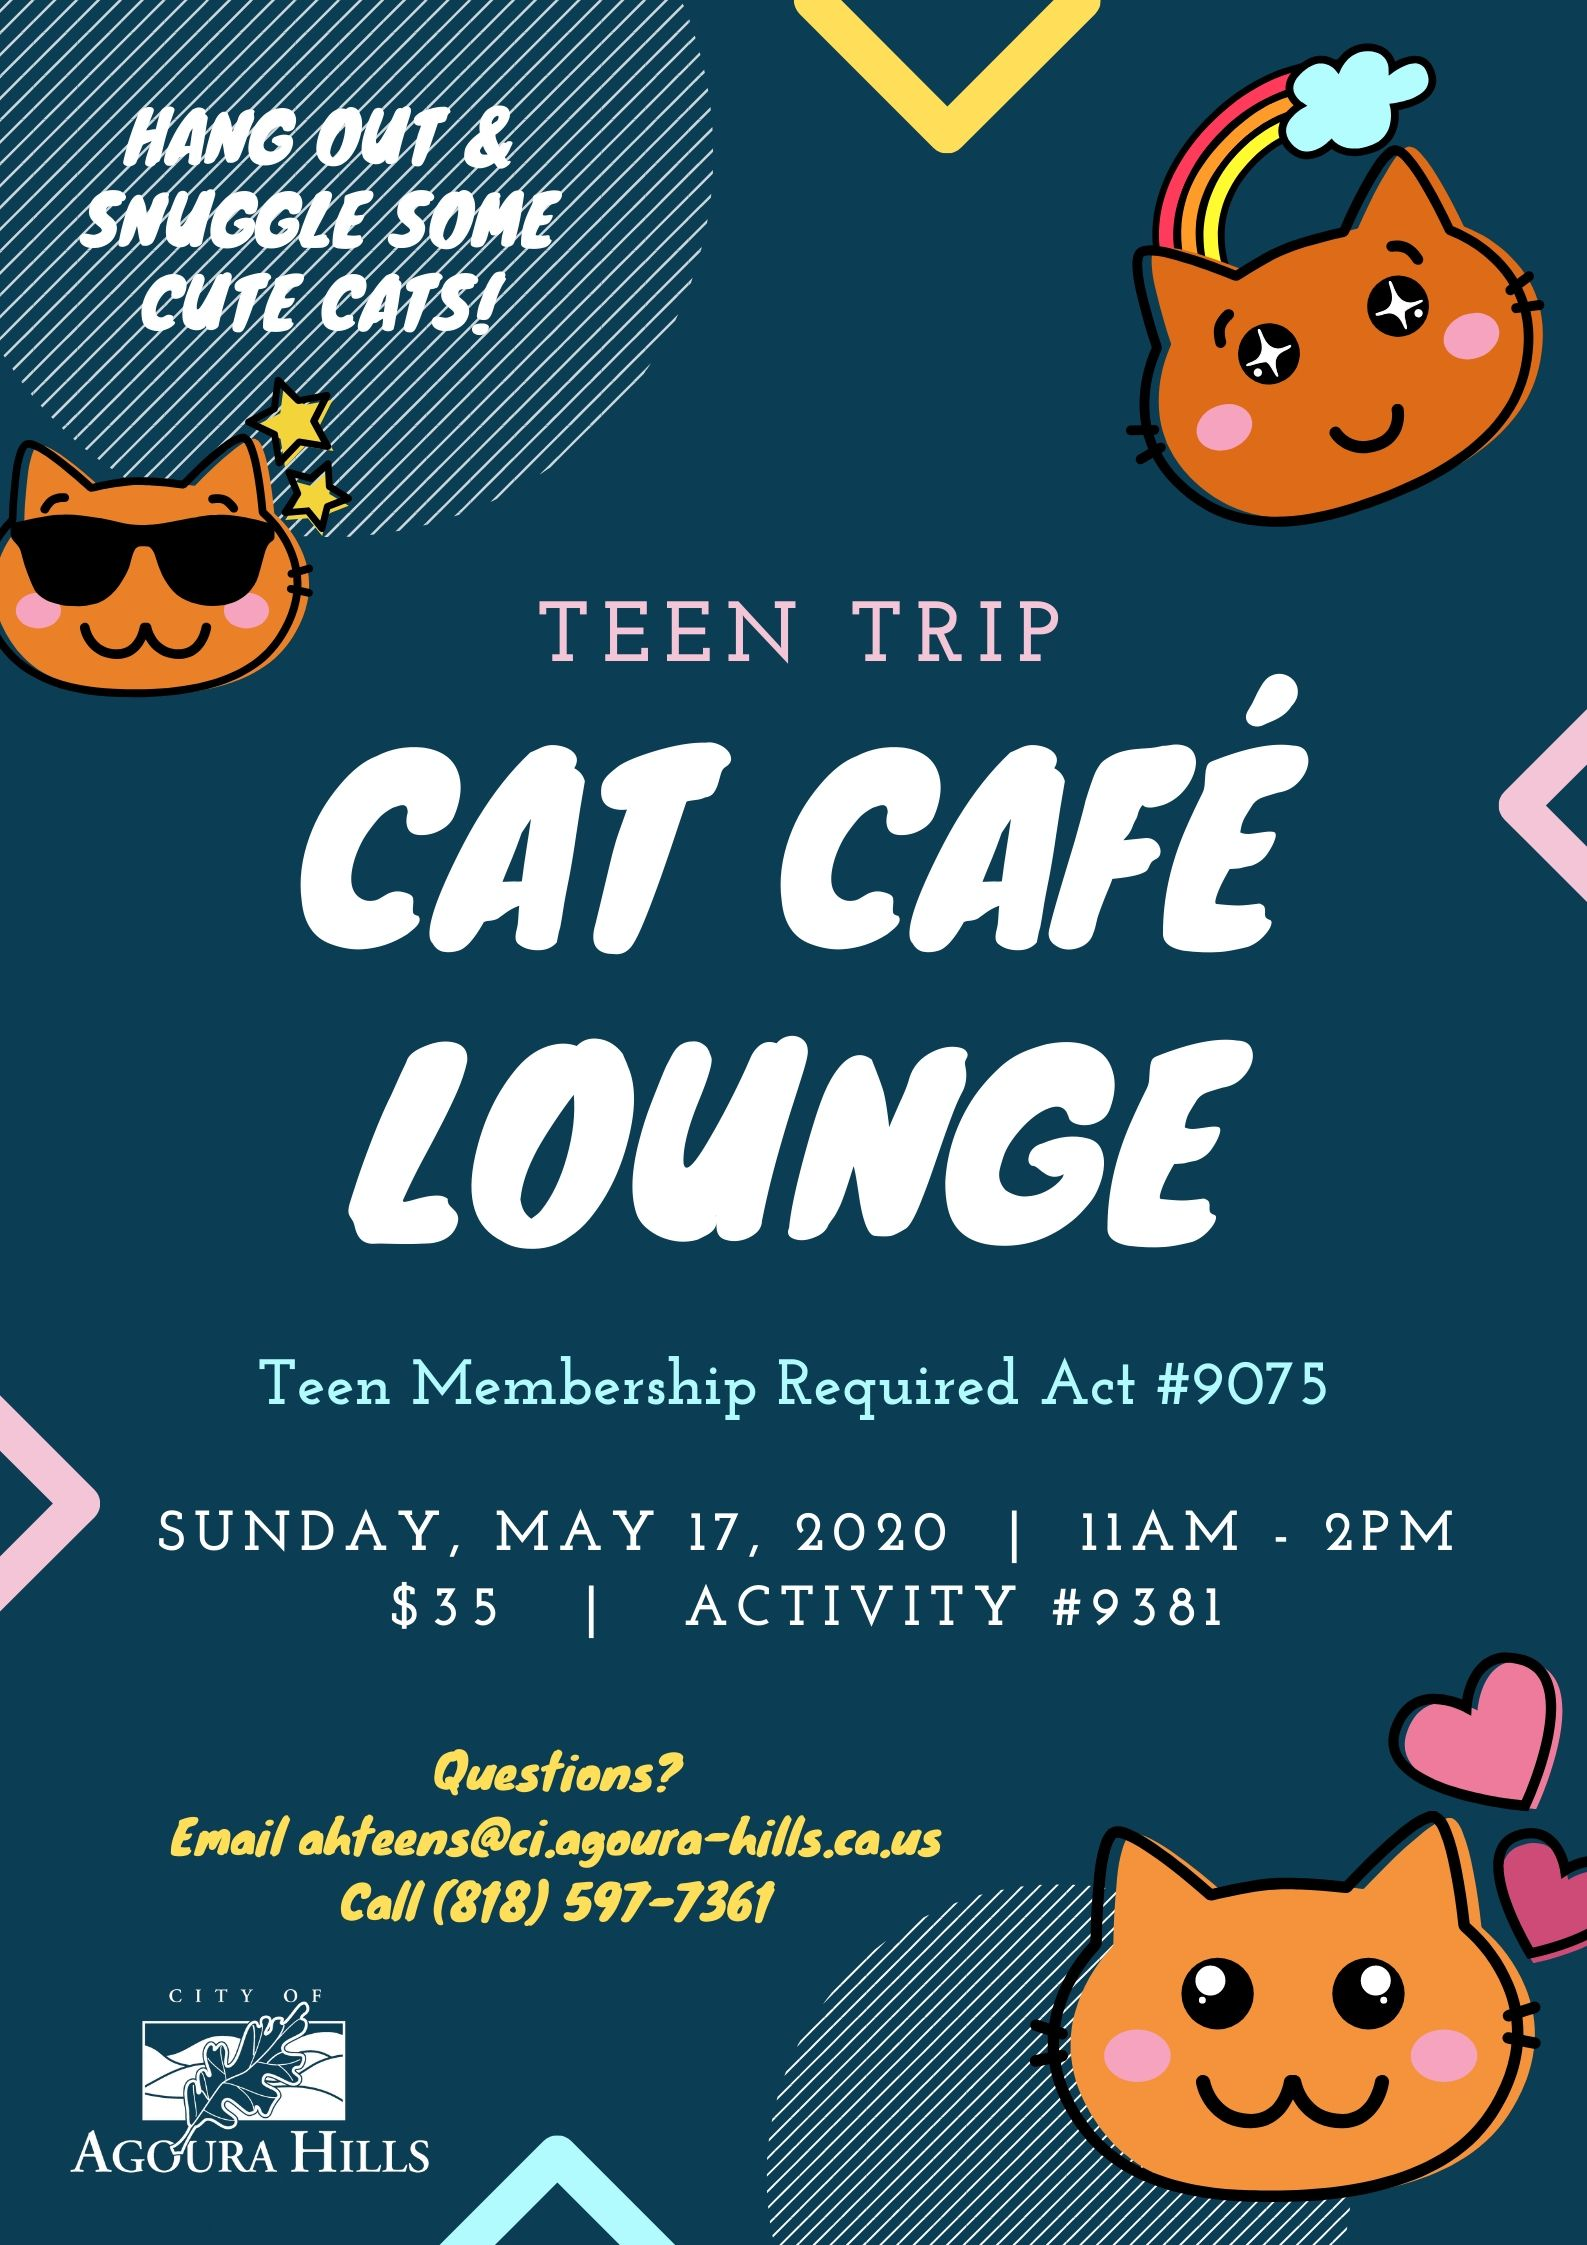 Cat Cafe Teen Trip